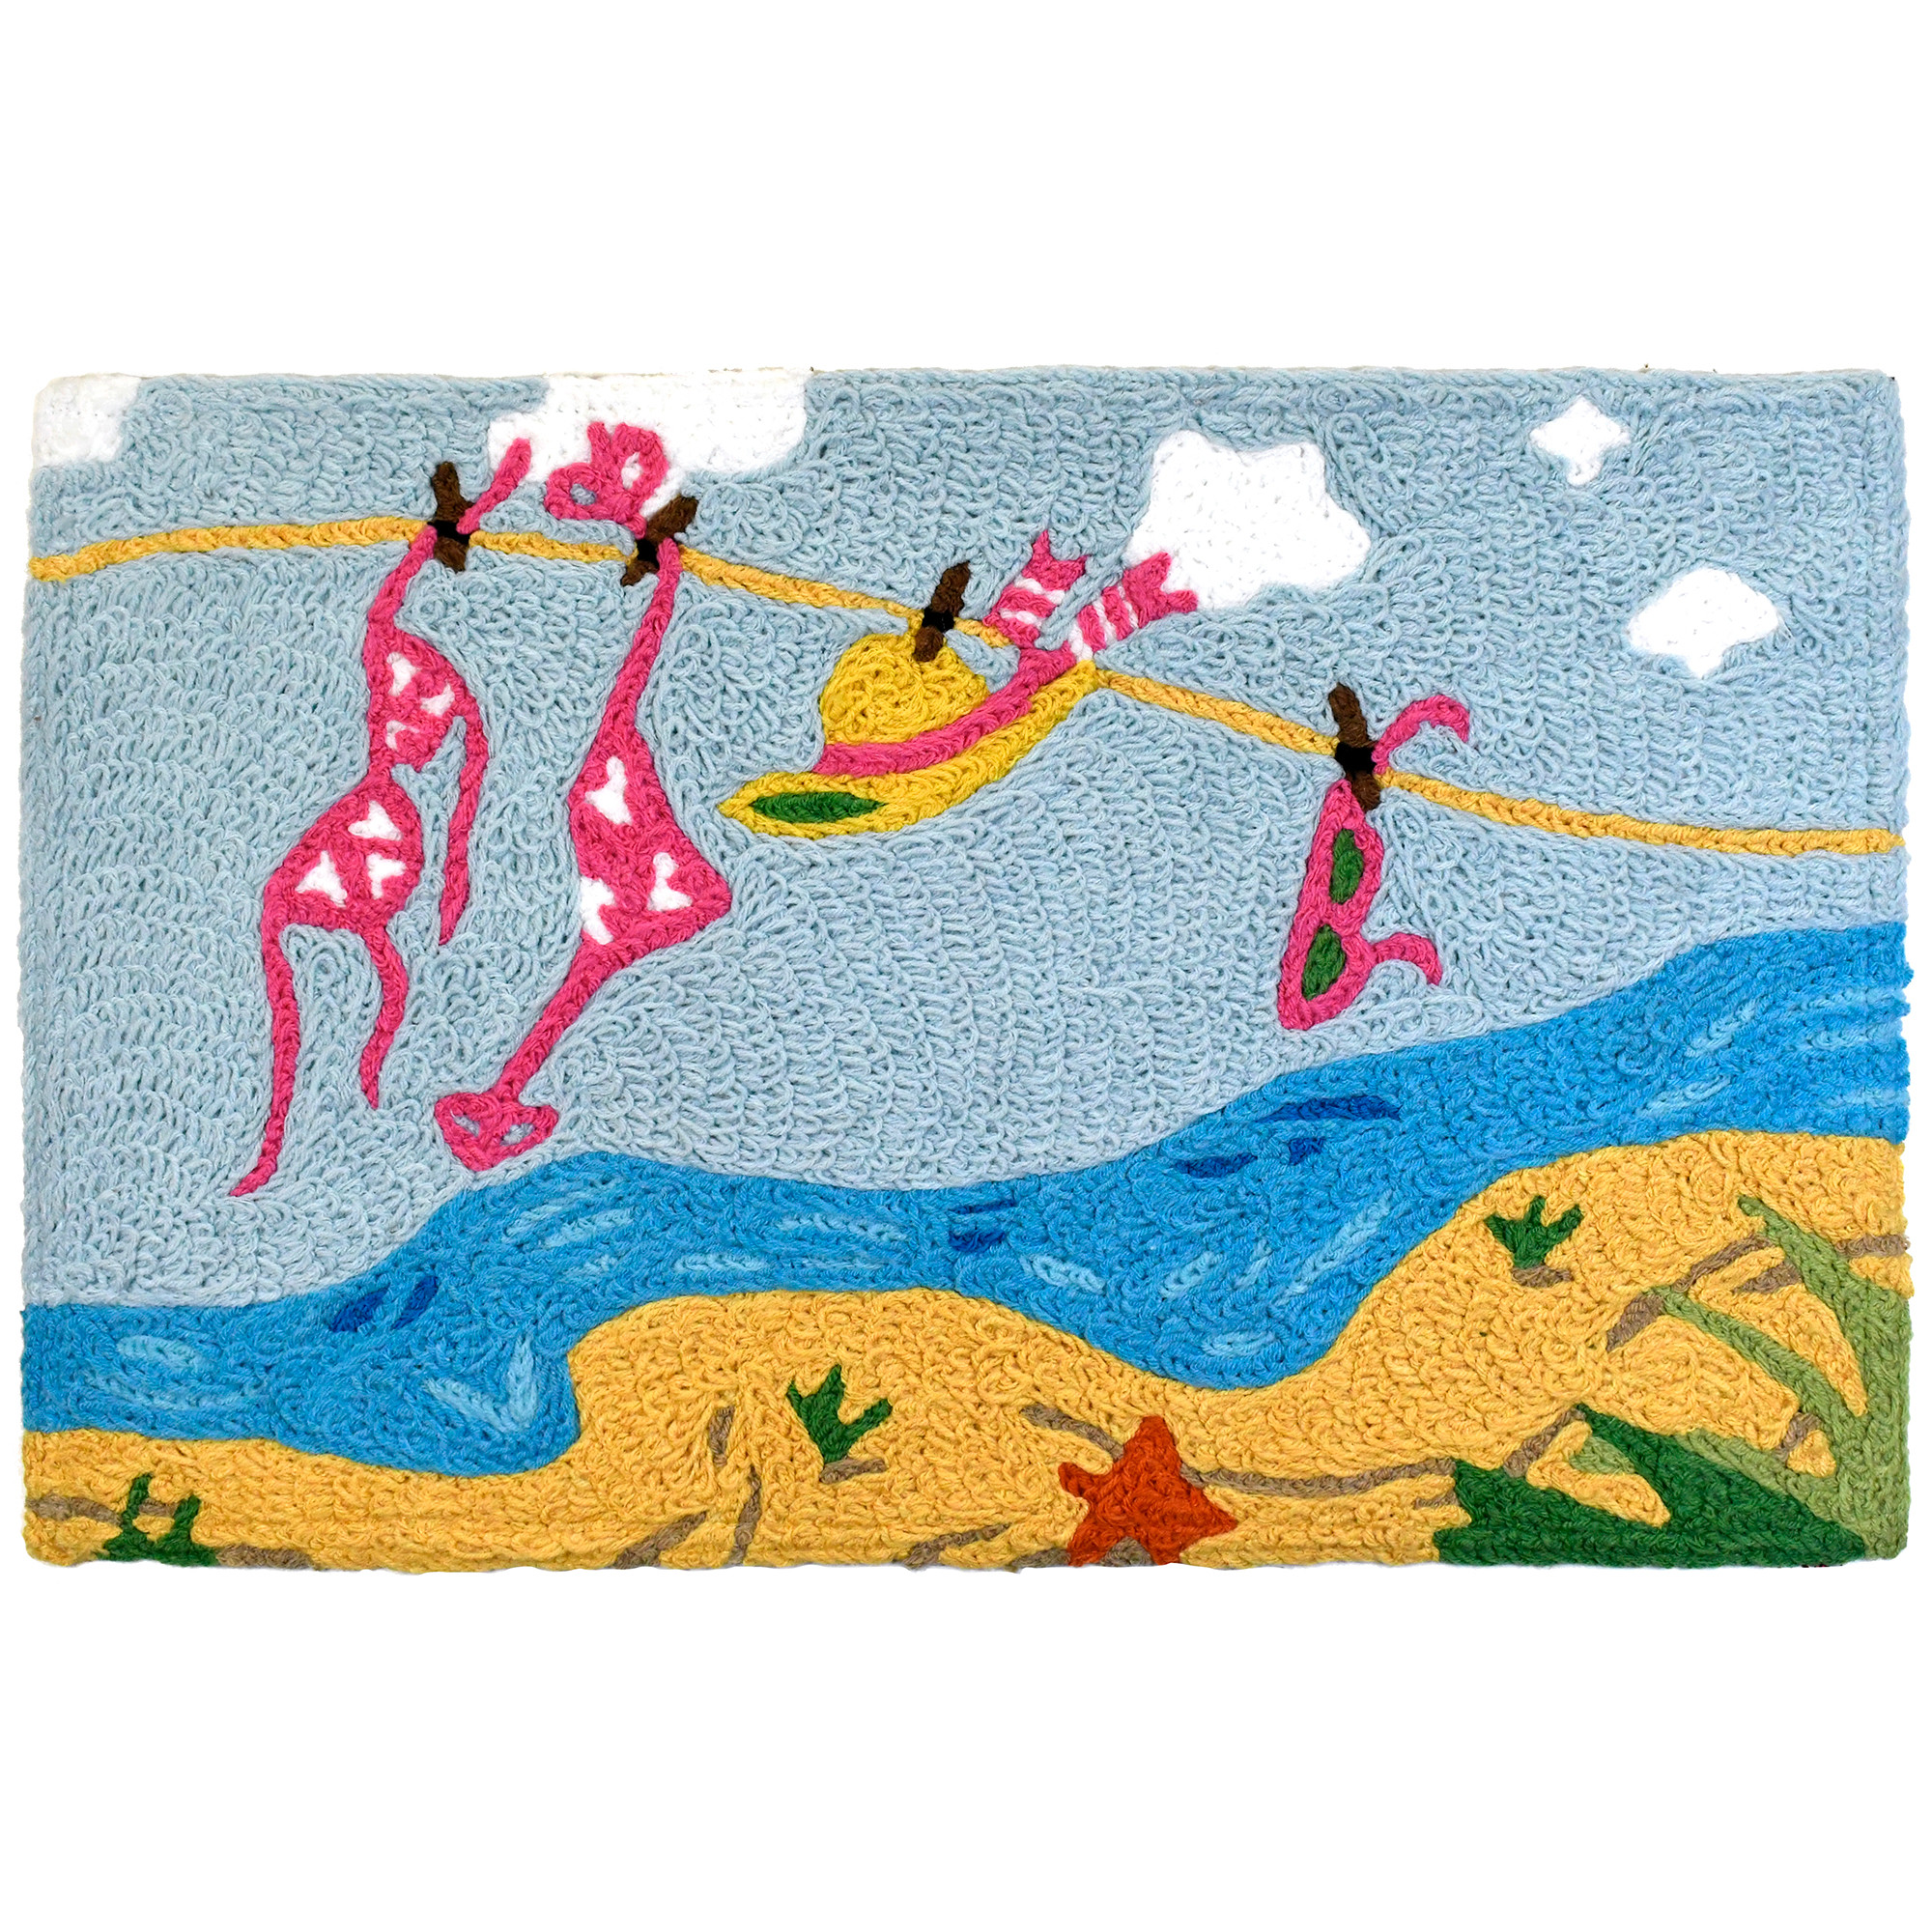 Hang it all on the line when you head to the beach! This Jellybean® accent rug offers reminders of the carefree lifestyle that comes with coastal living. Bring it to your inland home or to remind visitors at your beach house. This machine washable Jellybean® accent rug is crated using recycled materials.